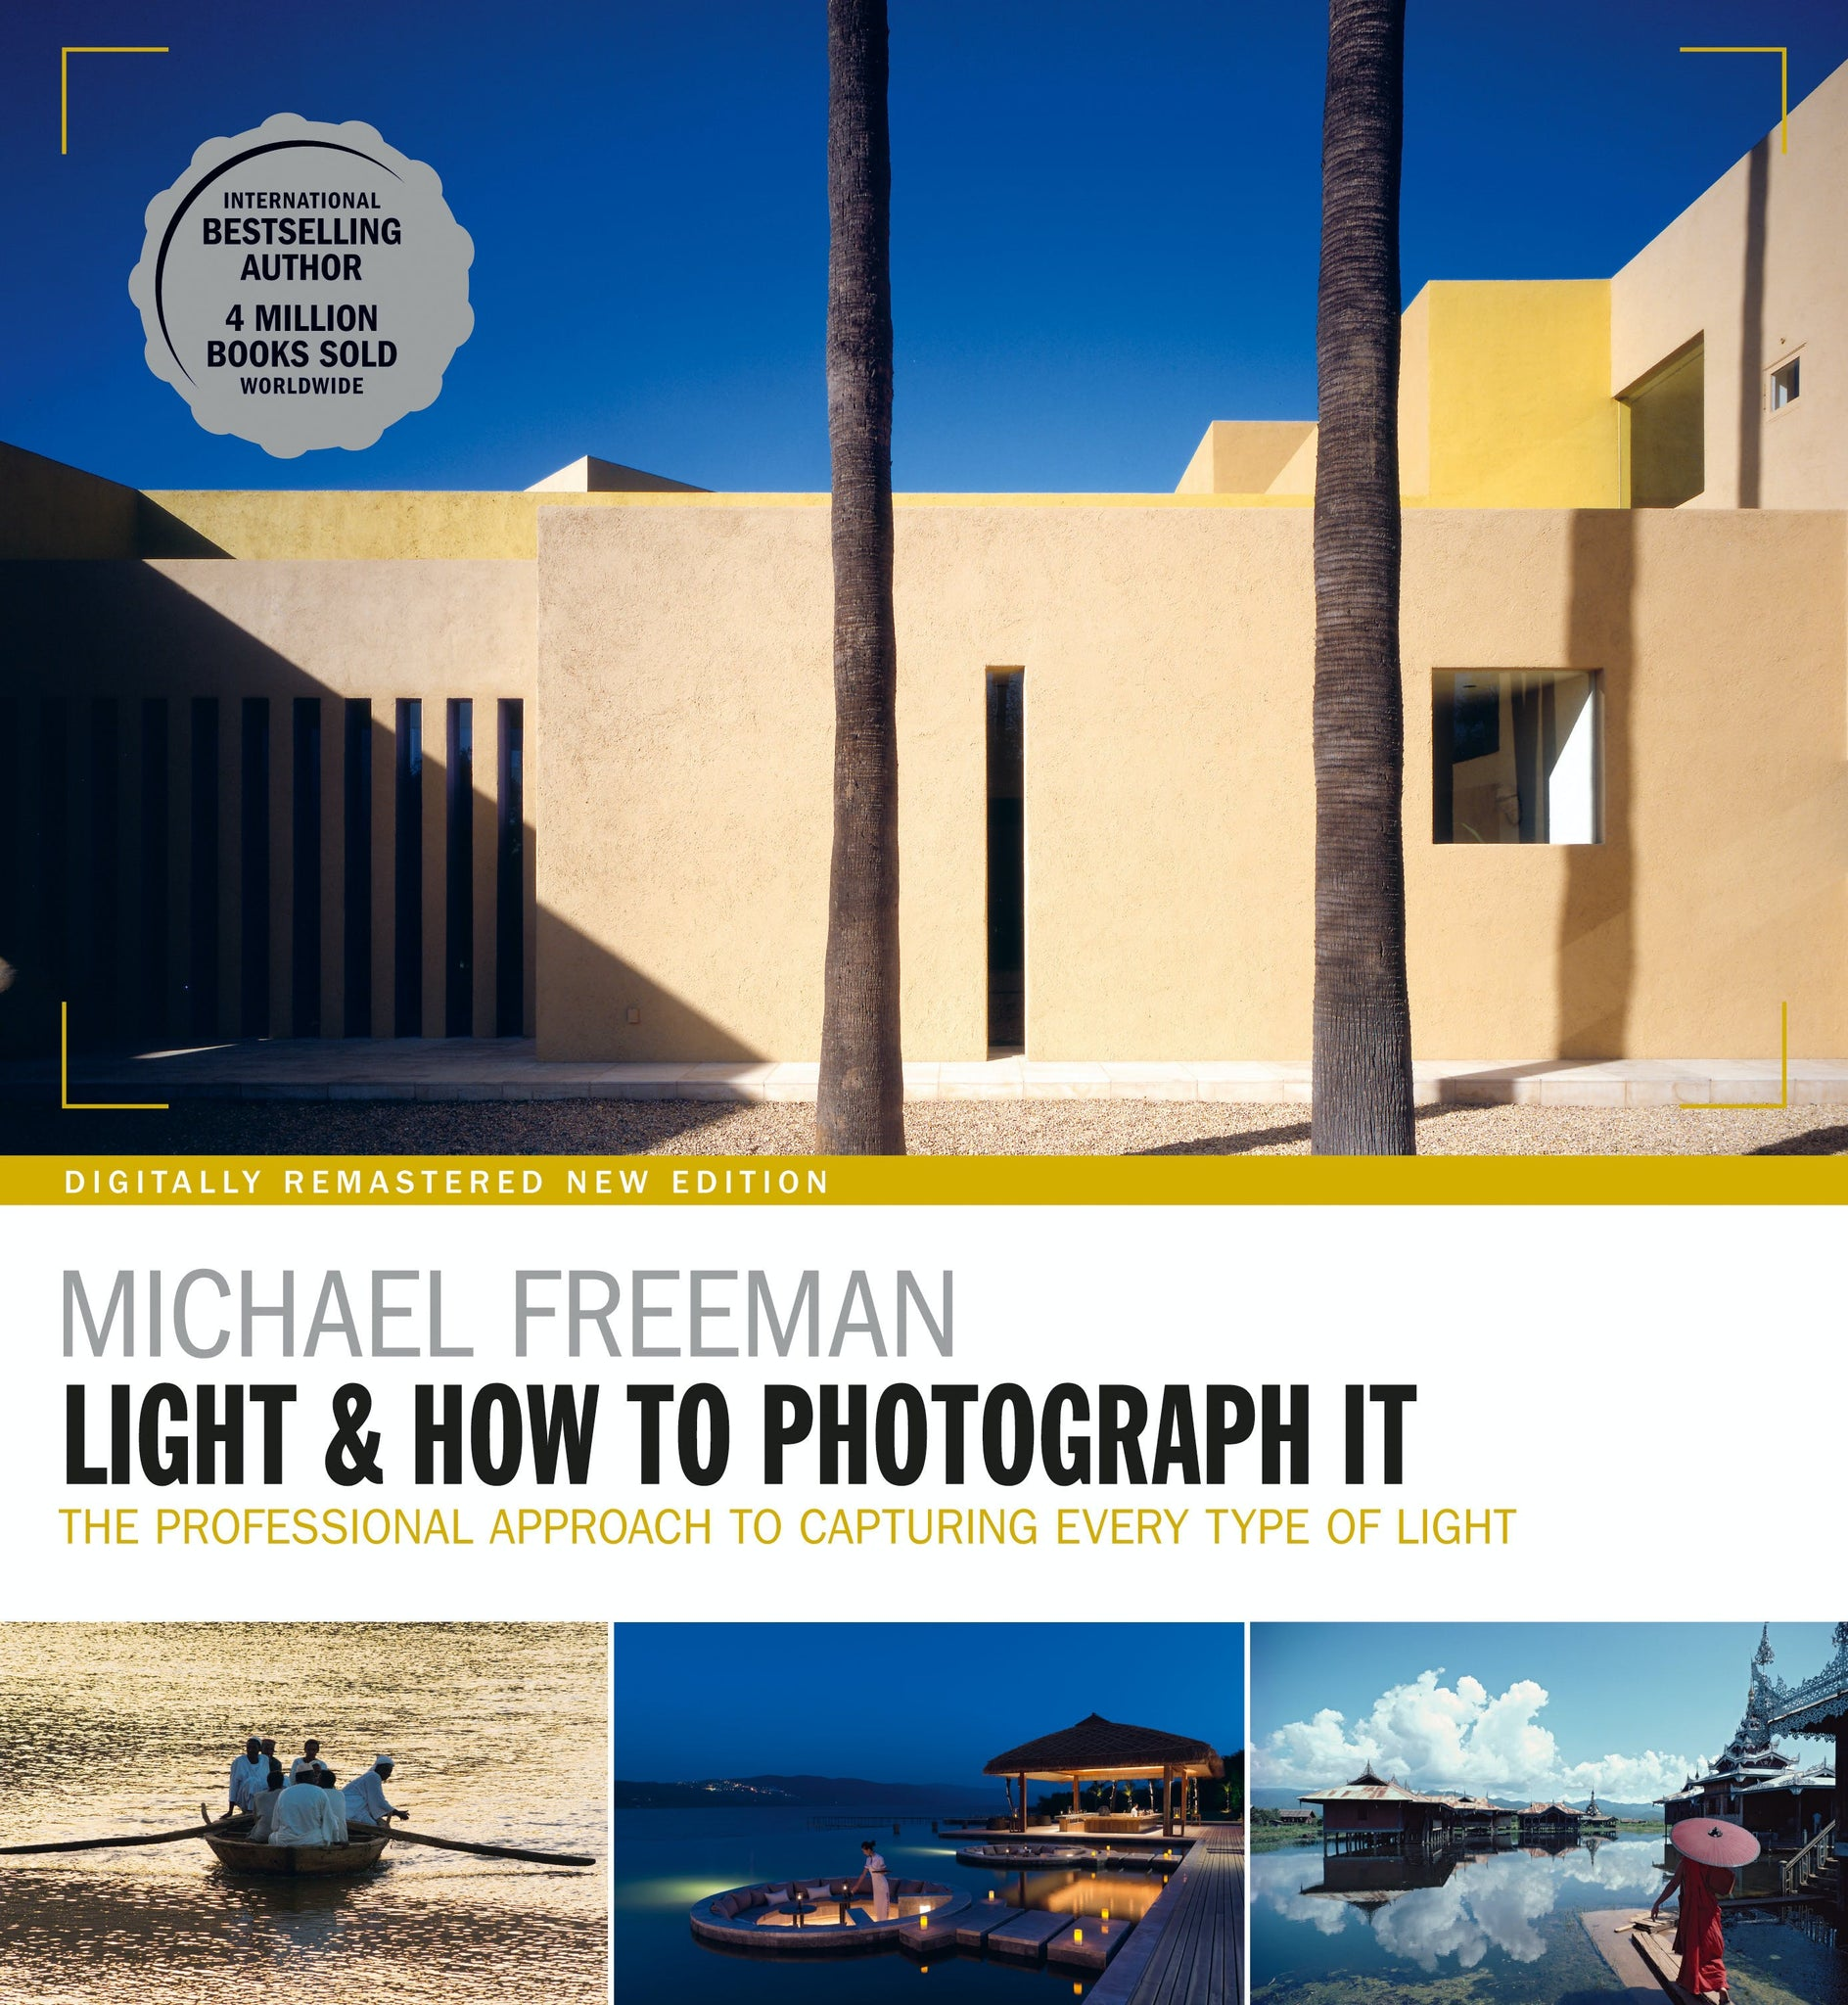 Light & How to Photograph It